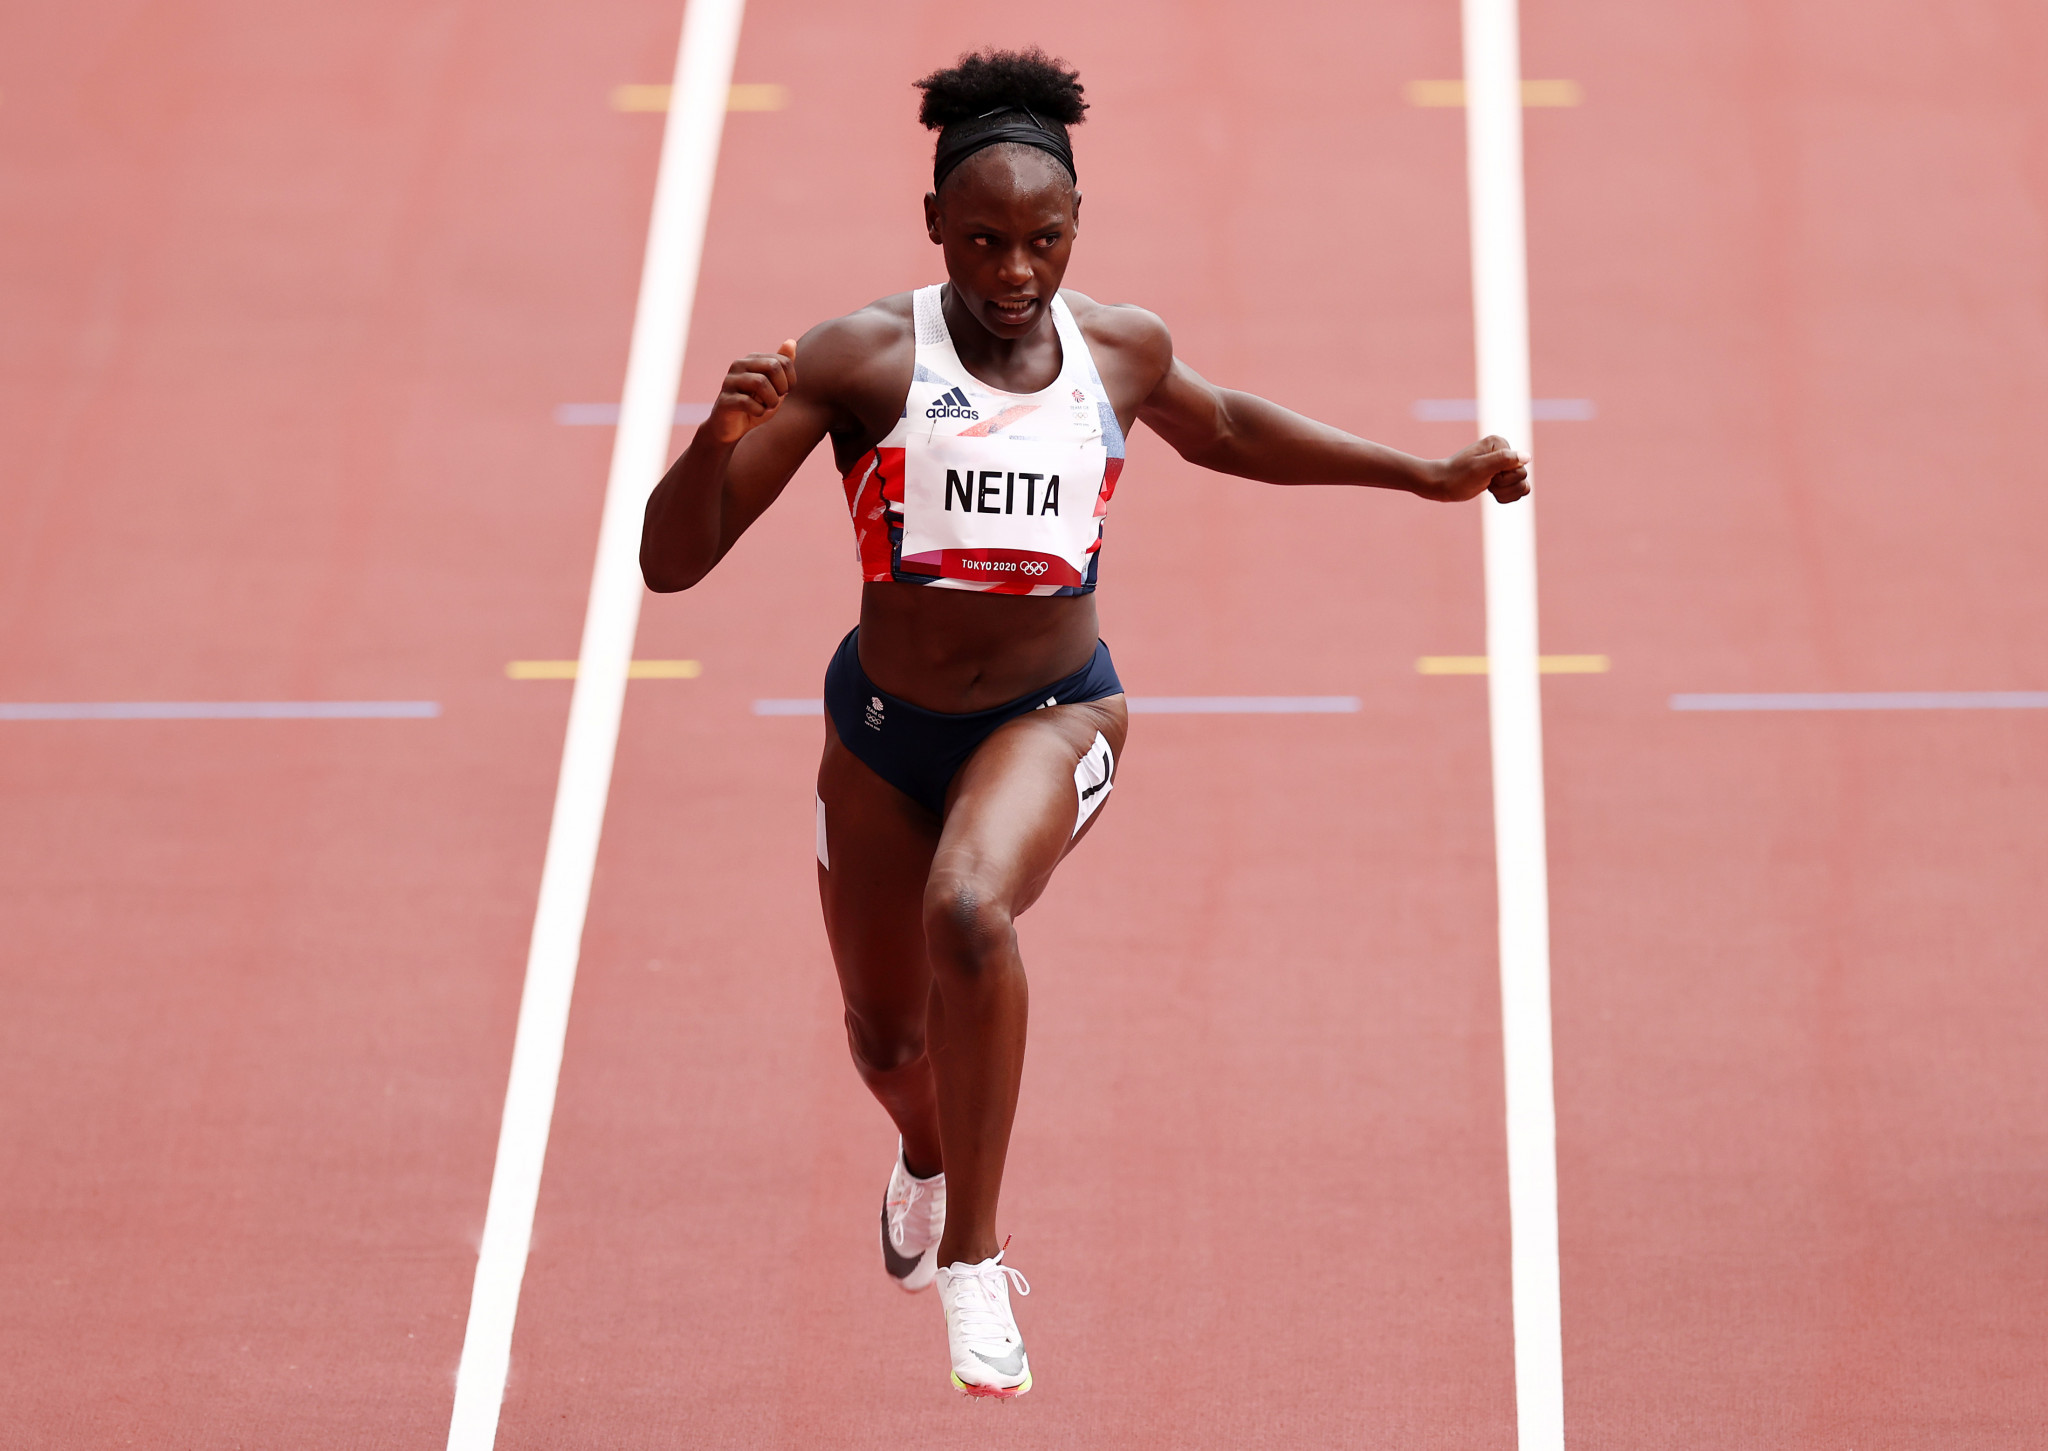 The eighth and final place in the women's 100m final went to Britain's Daryll Neita, who was only fractionally quicker than Trinidad and Tobago's Michelle-Lee Ahye  ©Getty Images